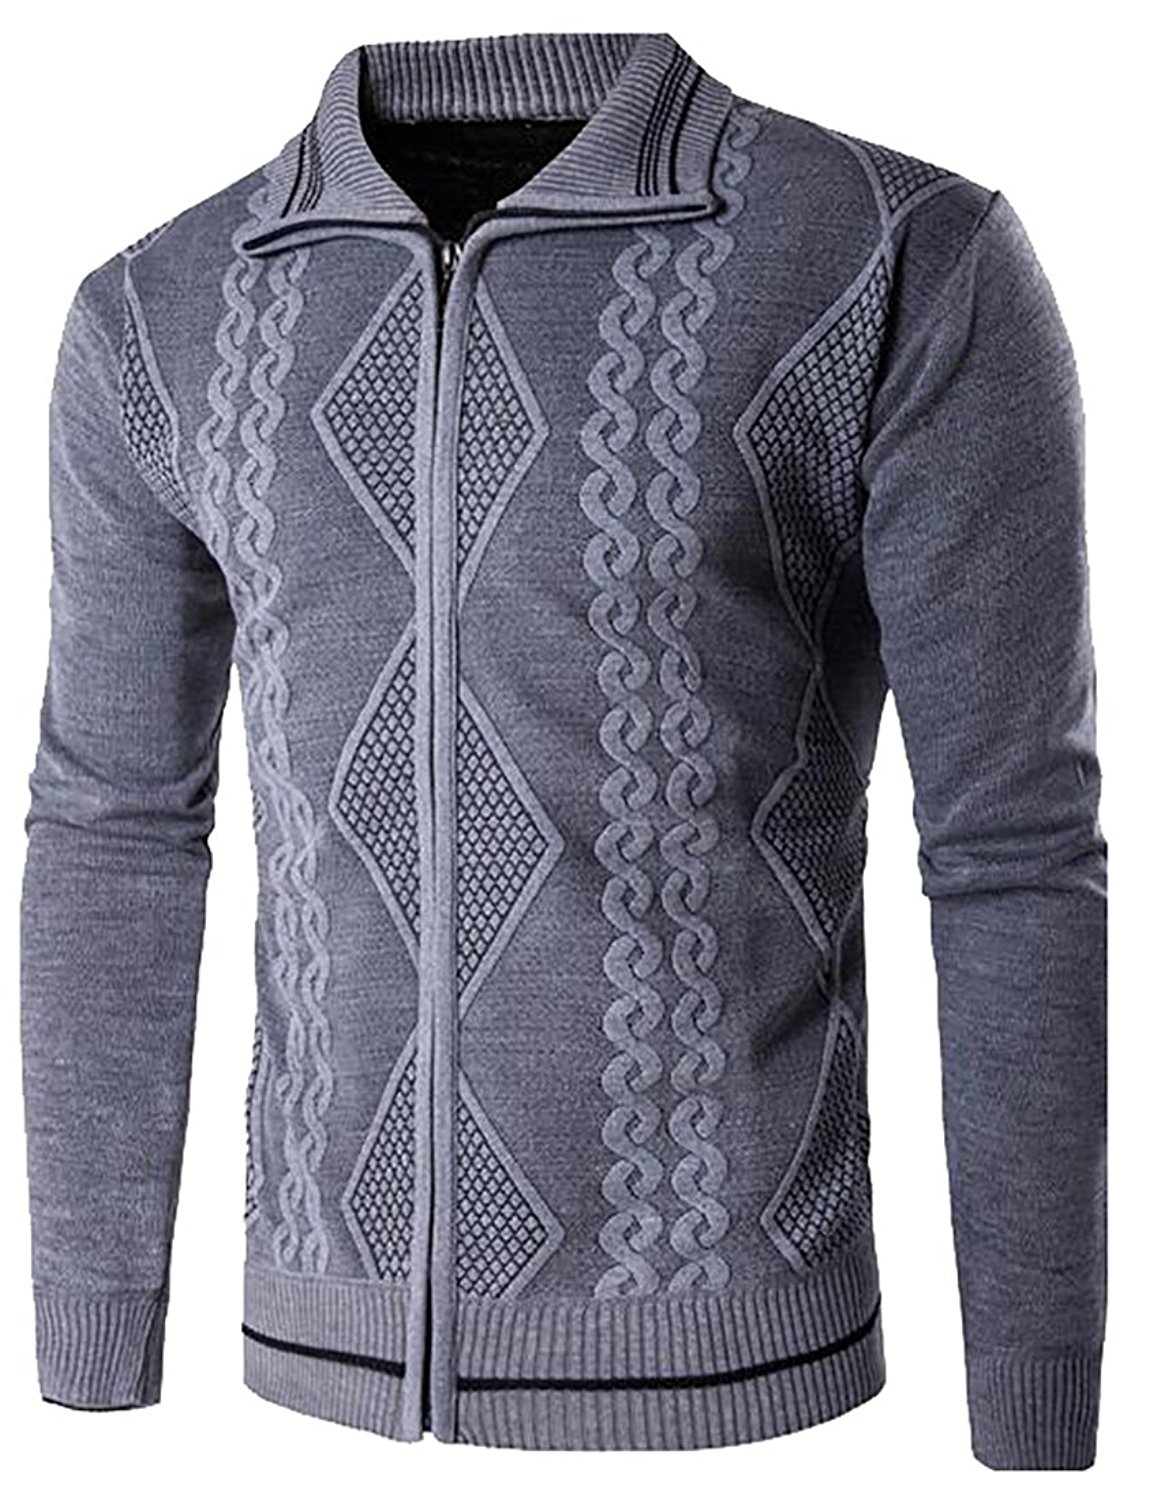 a0458a650 Get Quotations · WSPLYSPJY Mens Casual Ribbed Cable Zipper Open Front Cardigan  Knit Sweater Grey XS